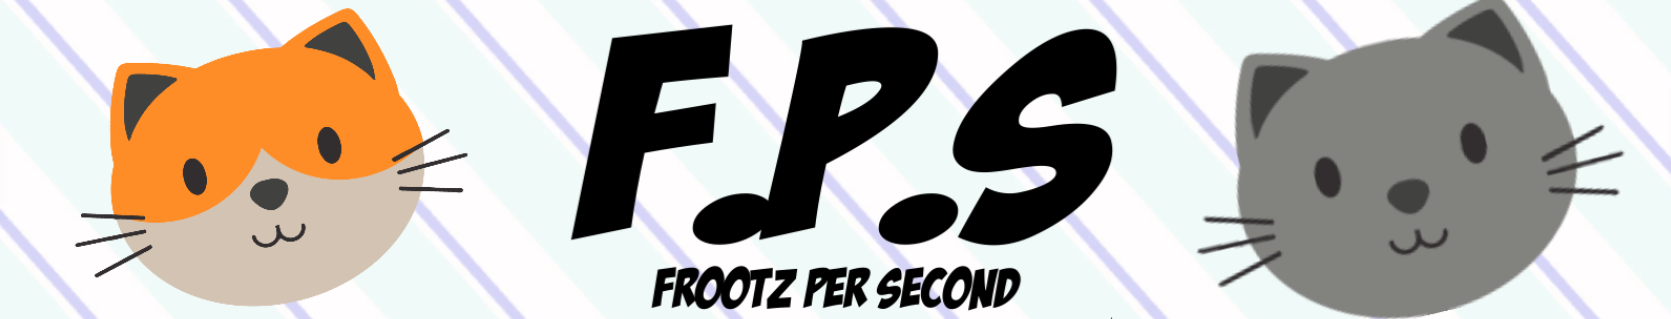 F.P.S - Frootz per second